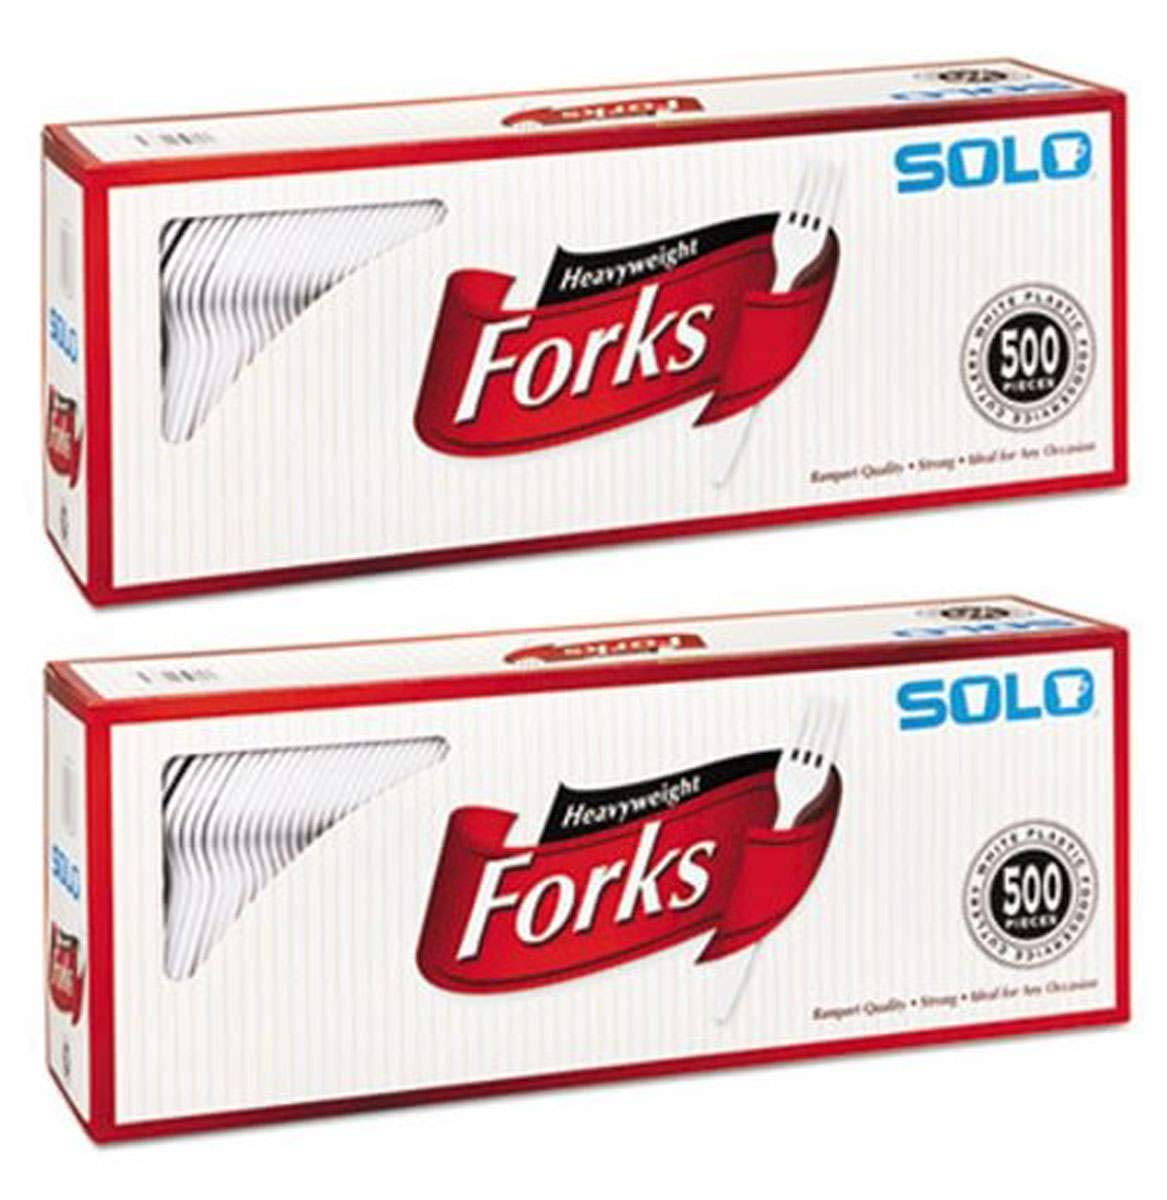 SOLO Sadda 827263 Heavyweight Plastic Cutlery, Forks, White, 6.41 in, 500/Carton, 2 Pack